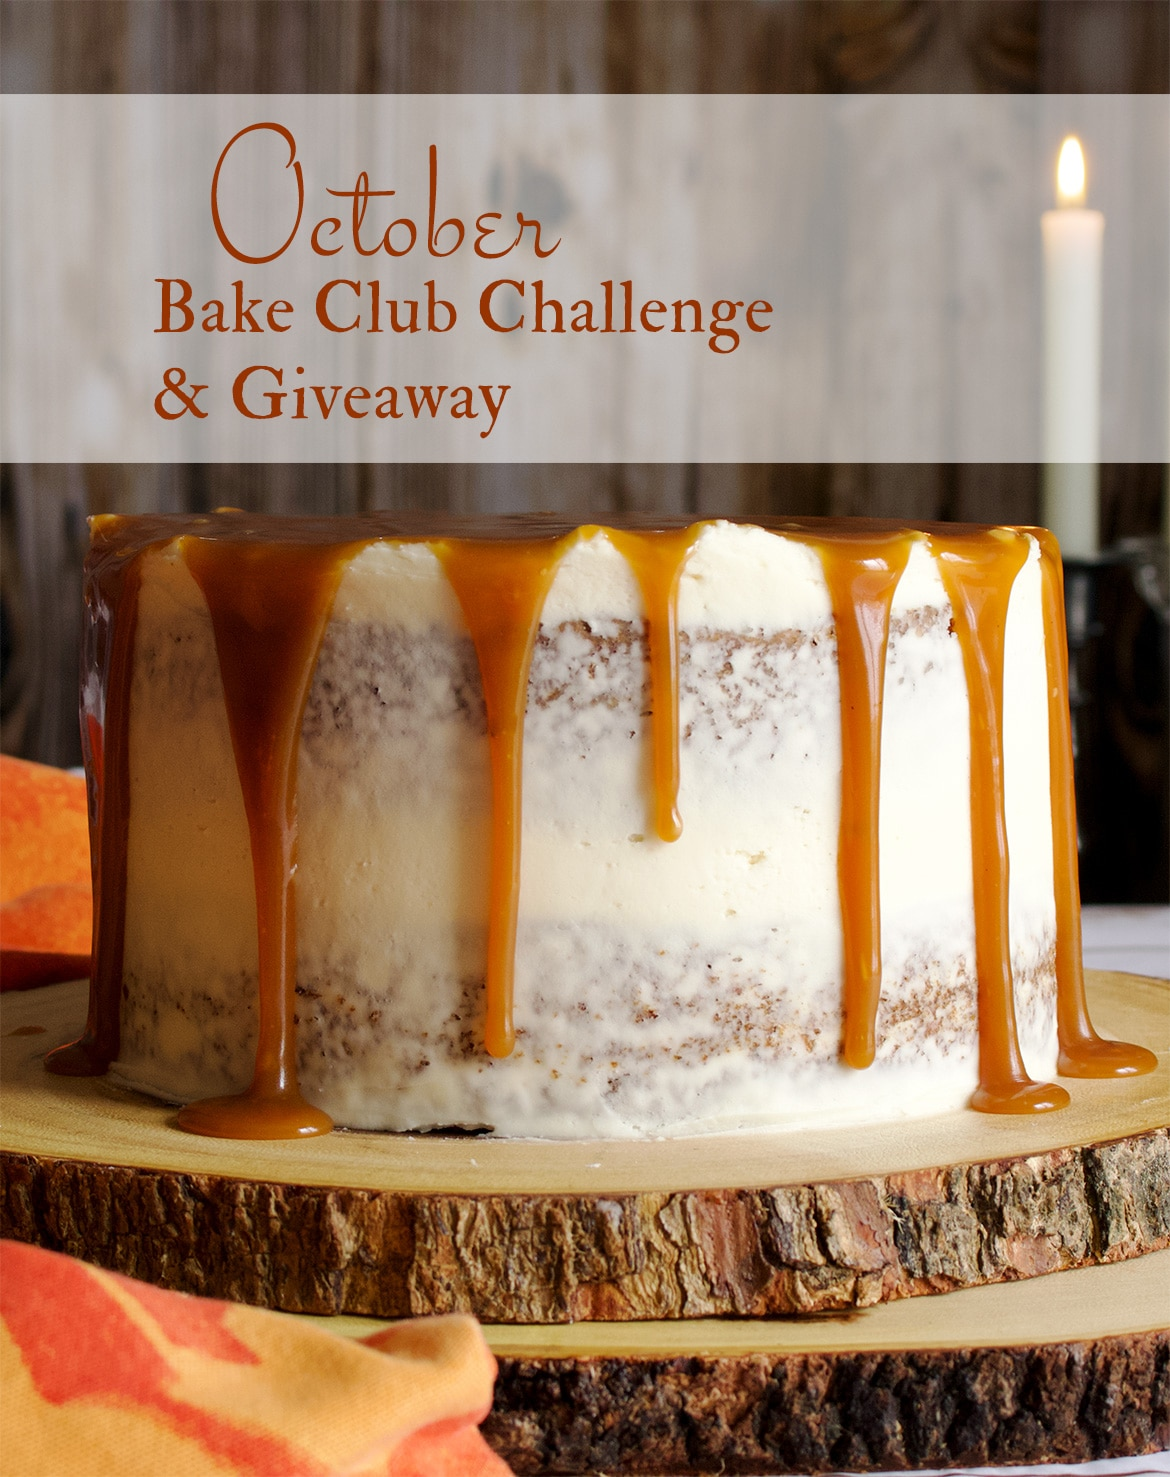 Carrot Cake with Cream Cheese Buttercream and Caramel Rum Sauce is the October, 2020 Bake Club Challenge recipe.